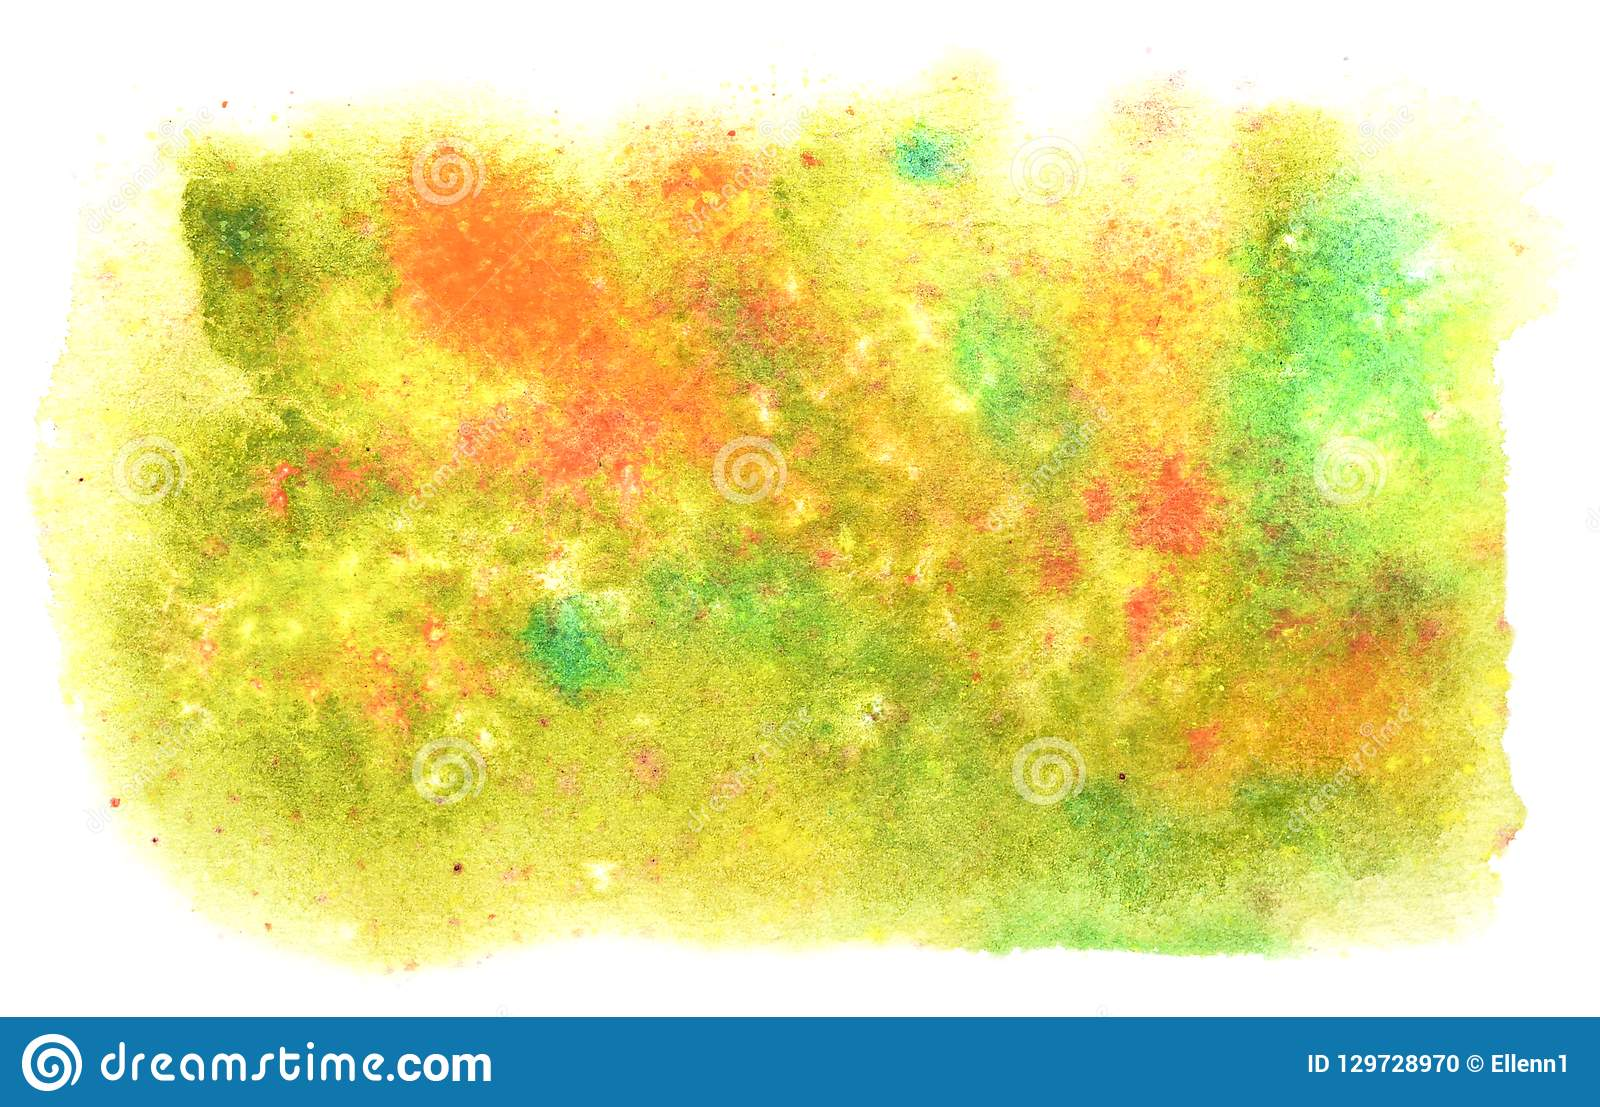 Beautiful autumn watercolor background. Yellow, green, red color